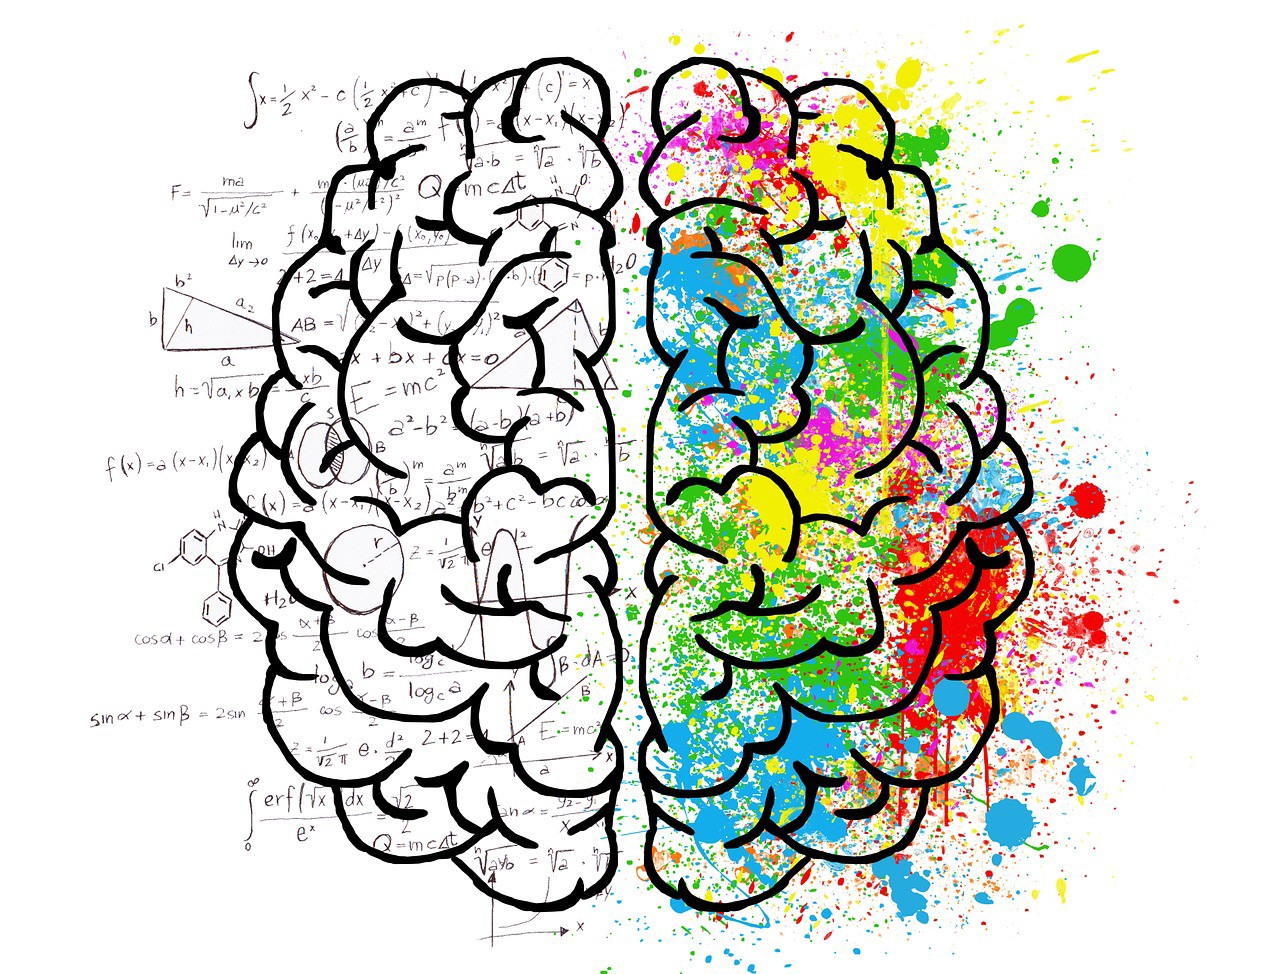 Neuroplasticity Begin To Change Life >> Want To Rewire Your Brain For Meaningful Life Changes Do These